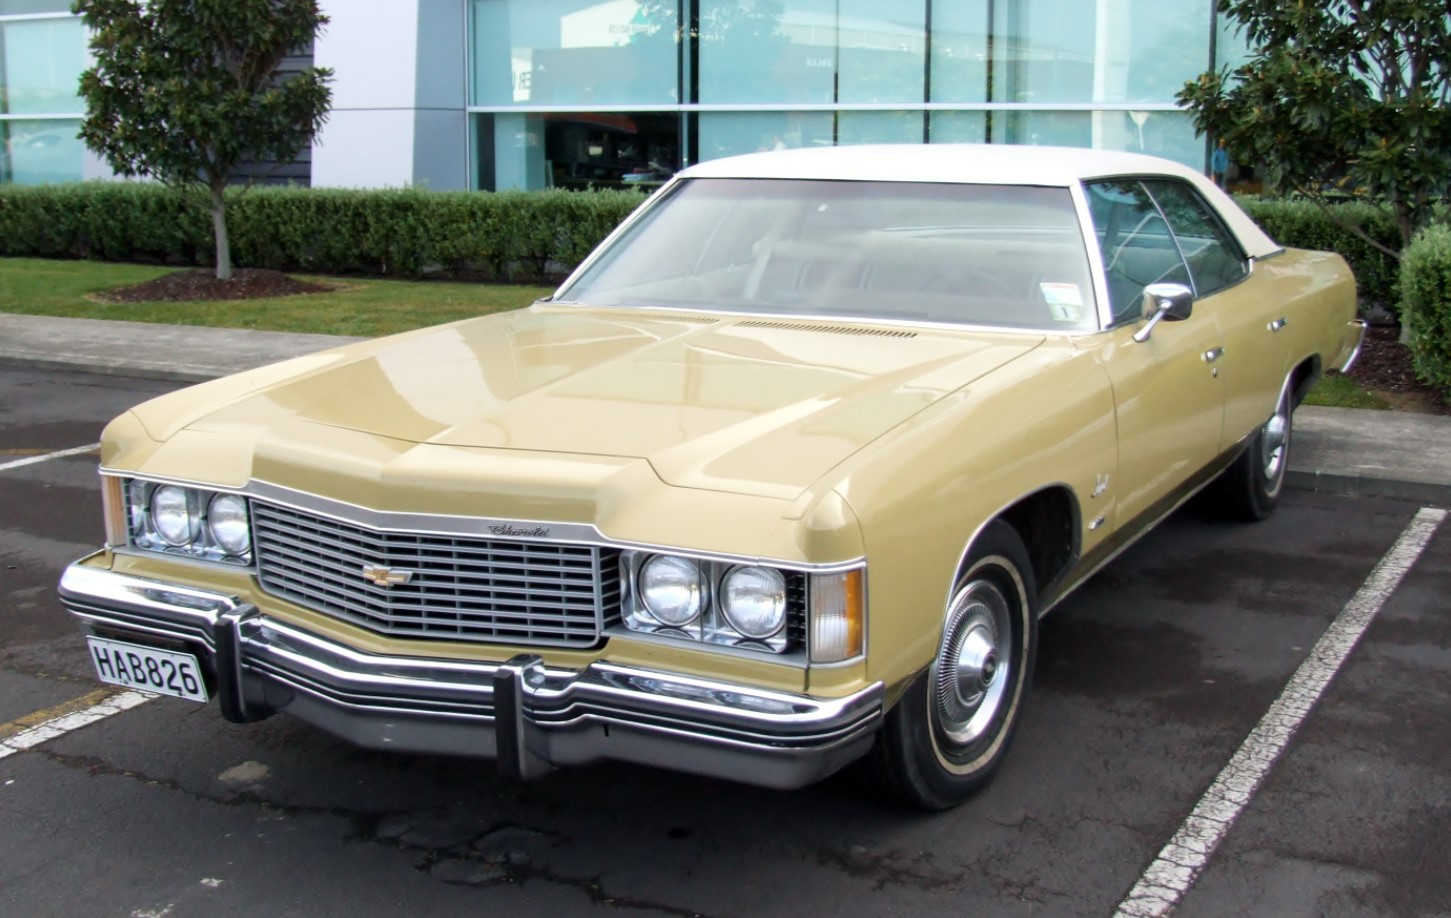 In 1977, which Chevrolet became a best-seller?